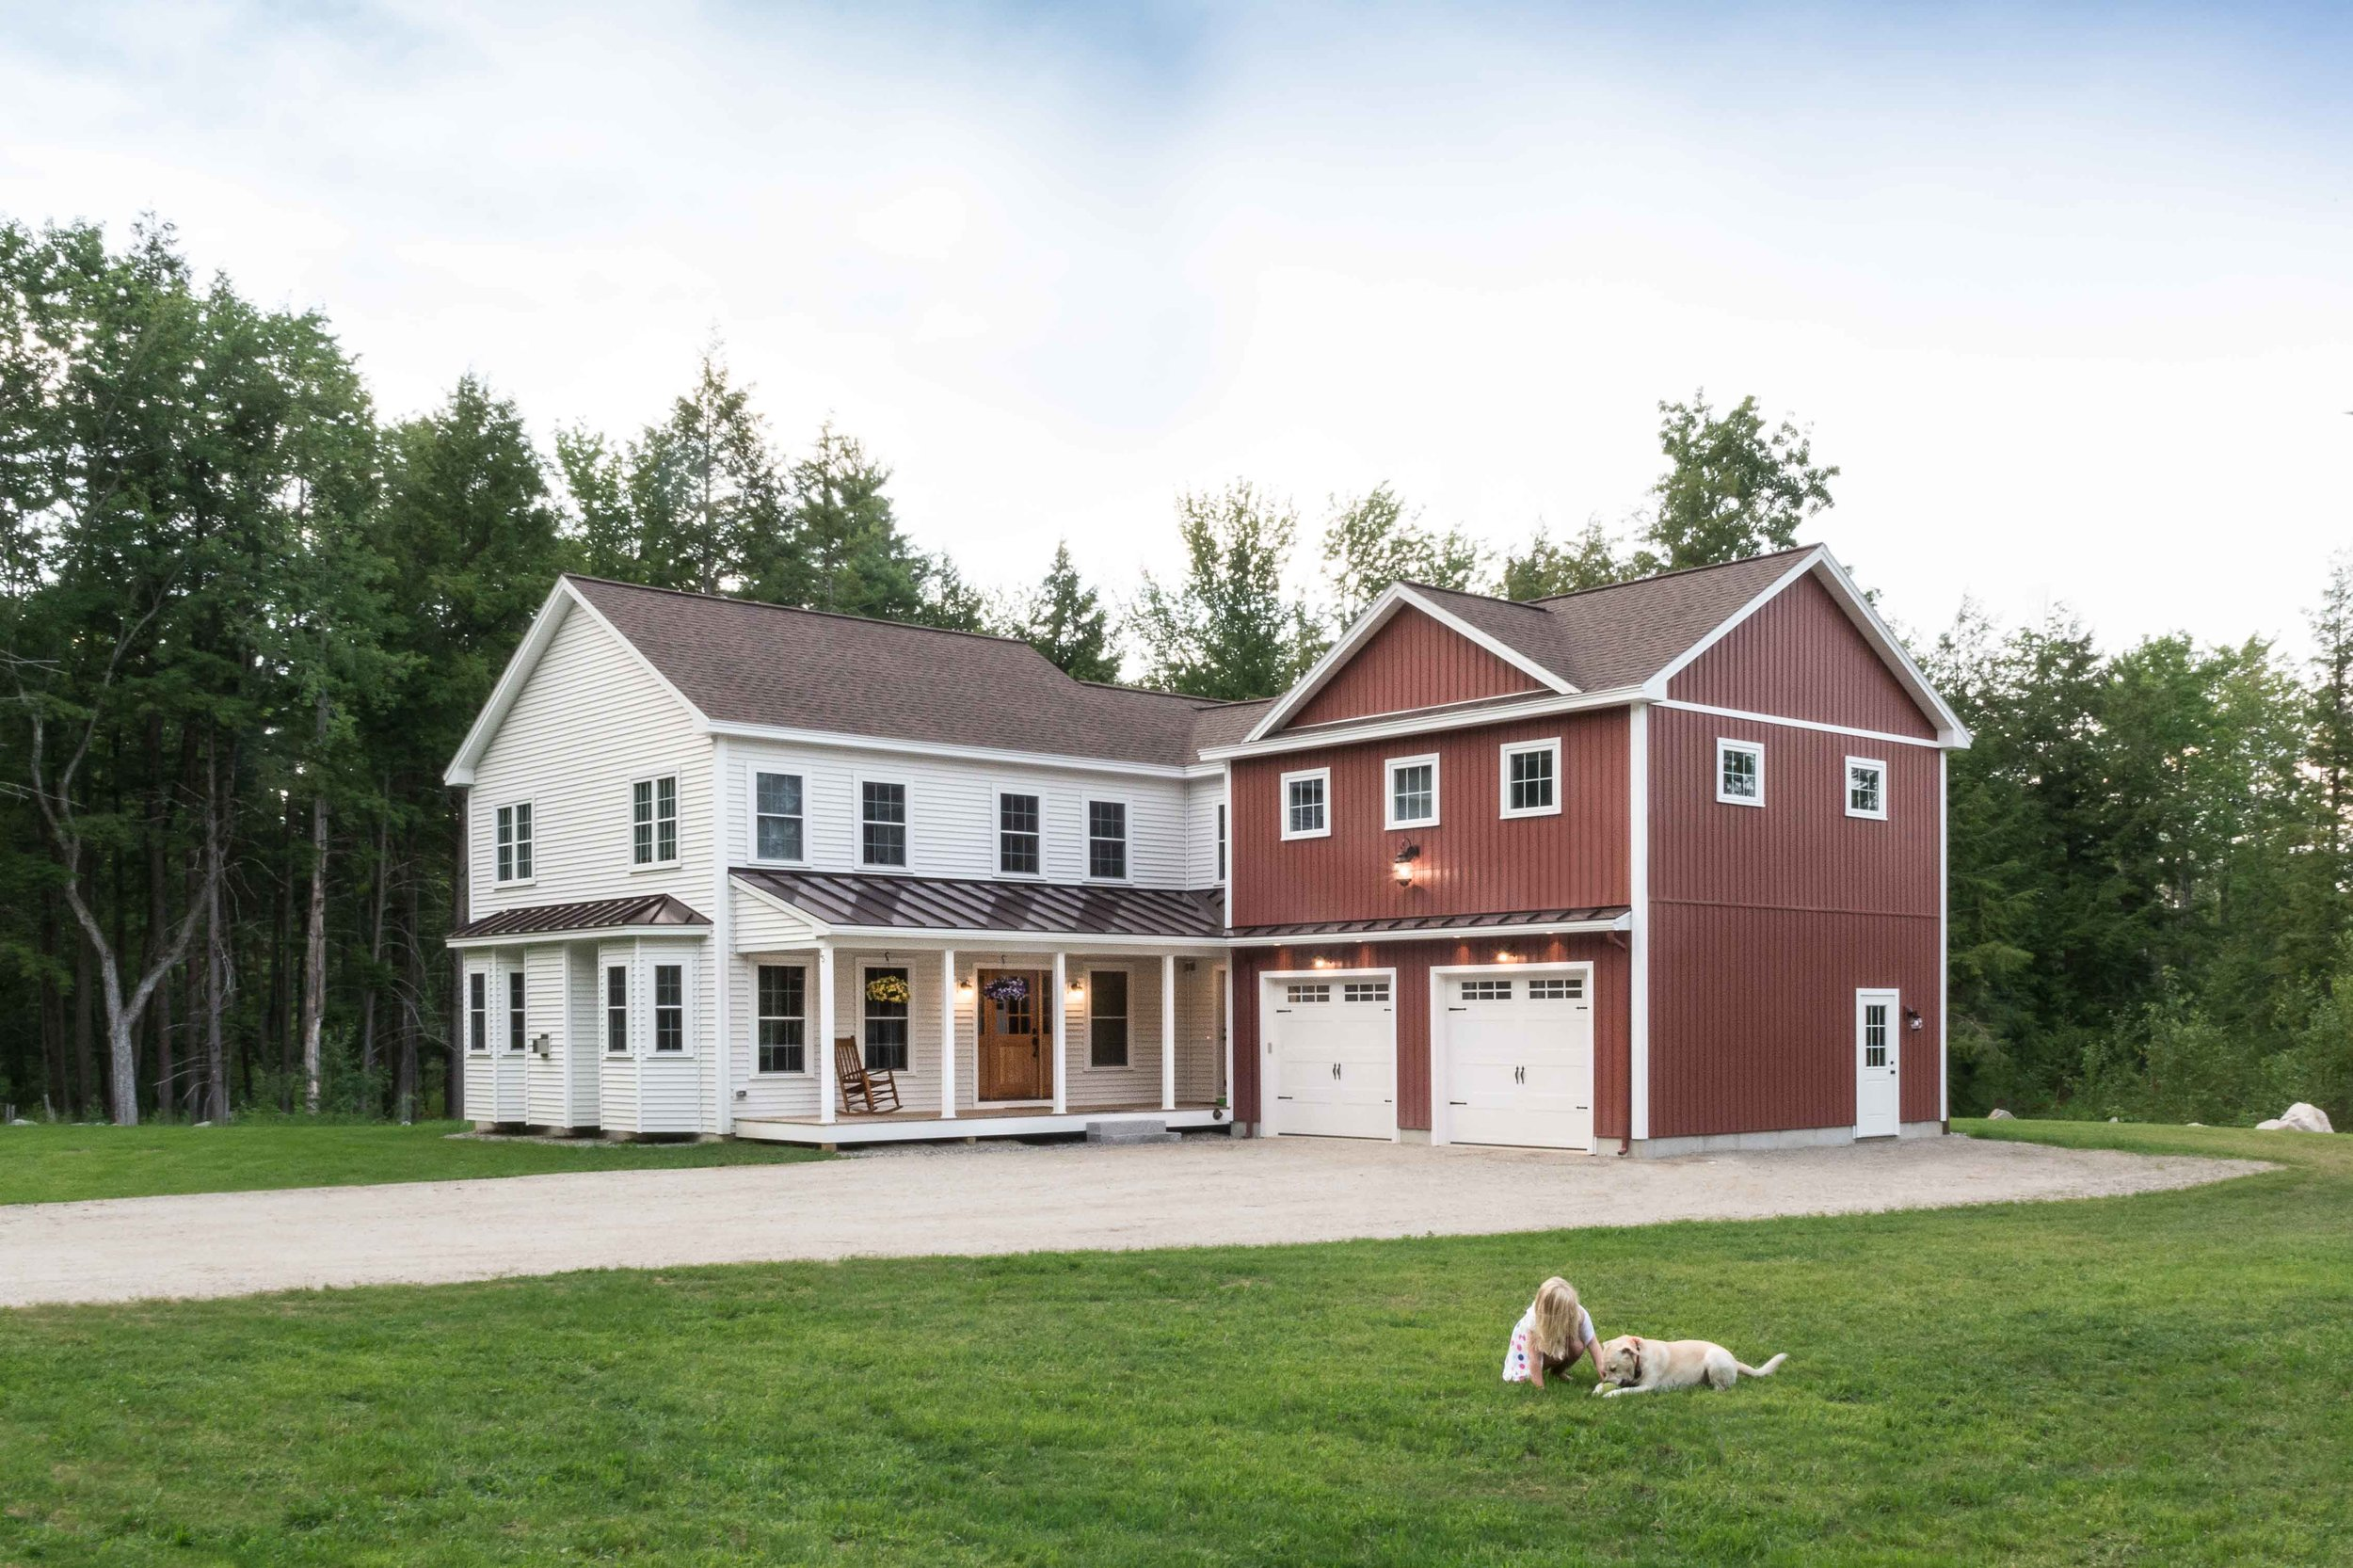 Farmhouse Exterior, Windham Maine. MGM Builders